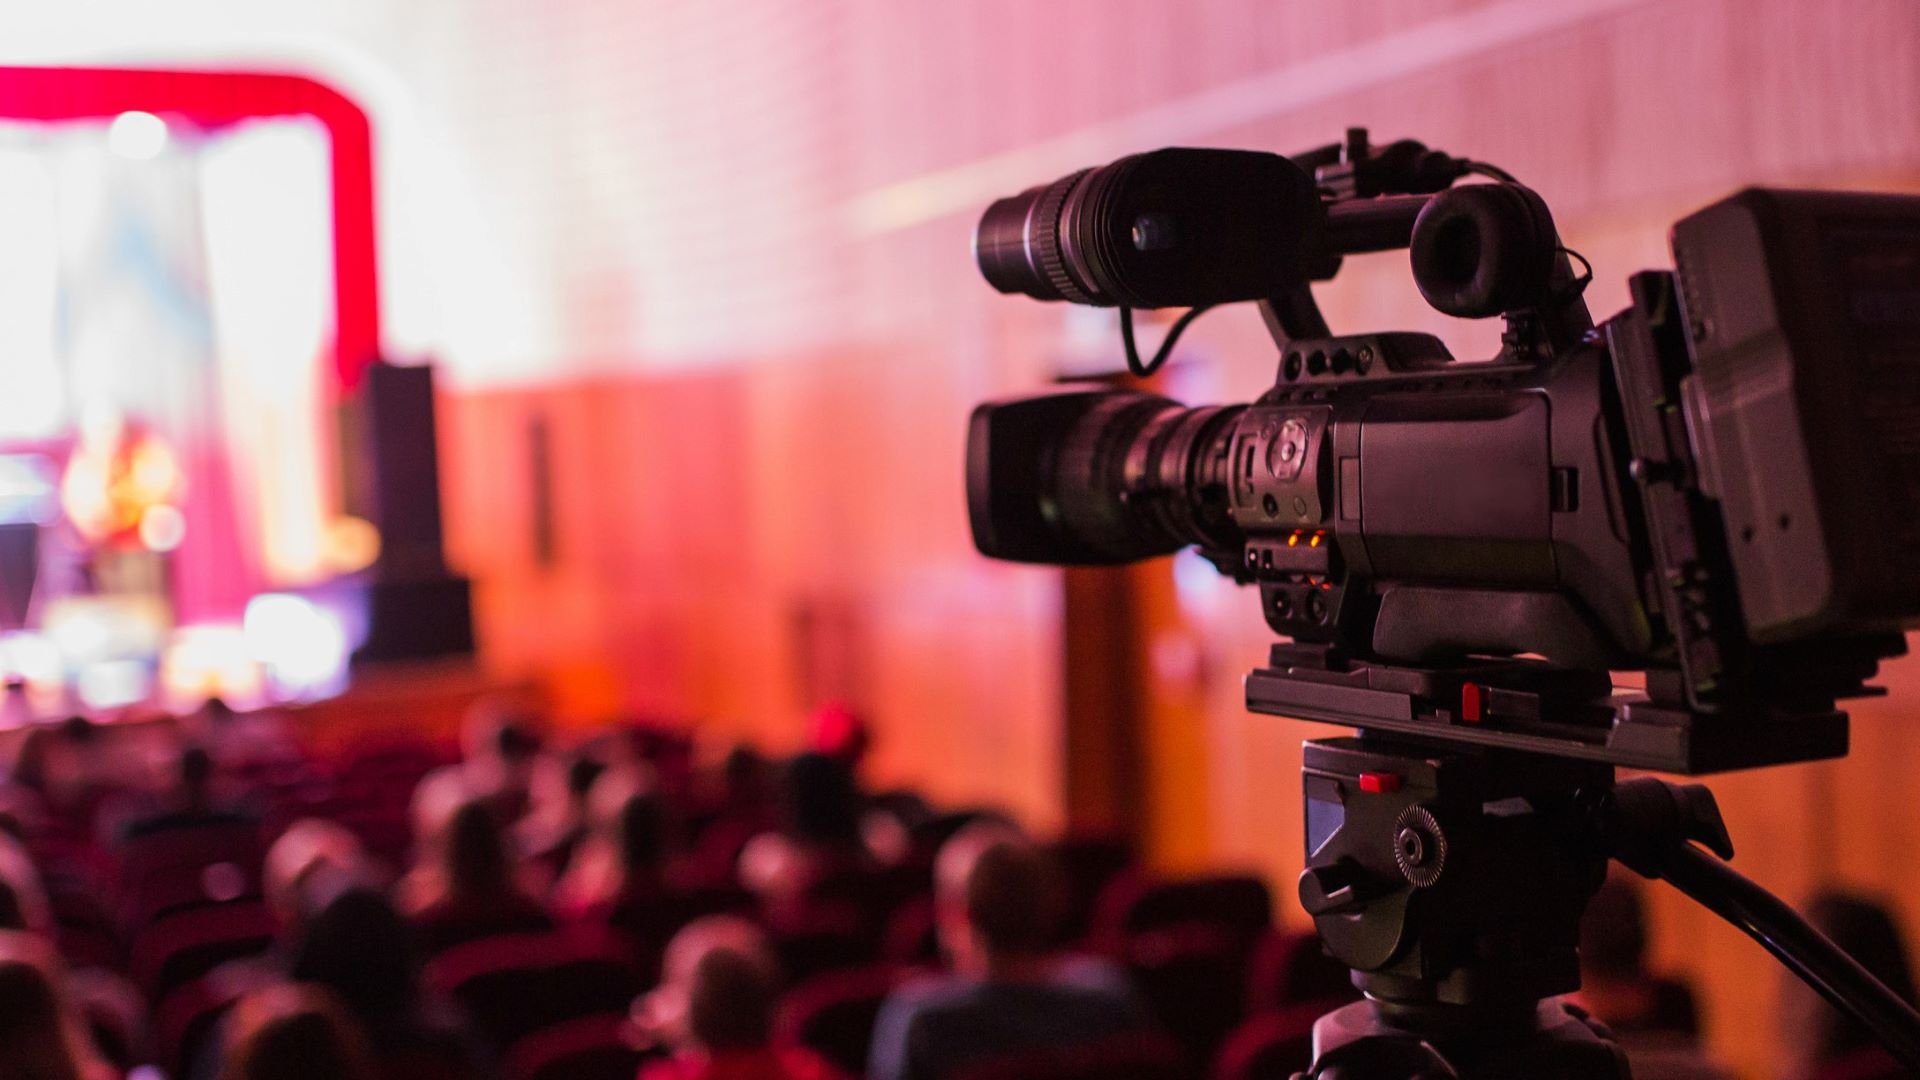 Professional video camera filming a business event marketing video